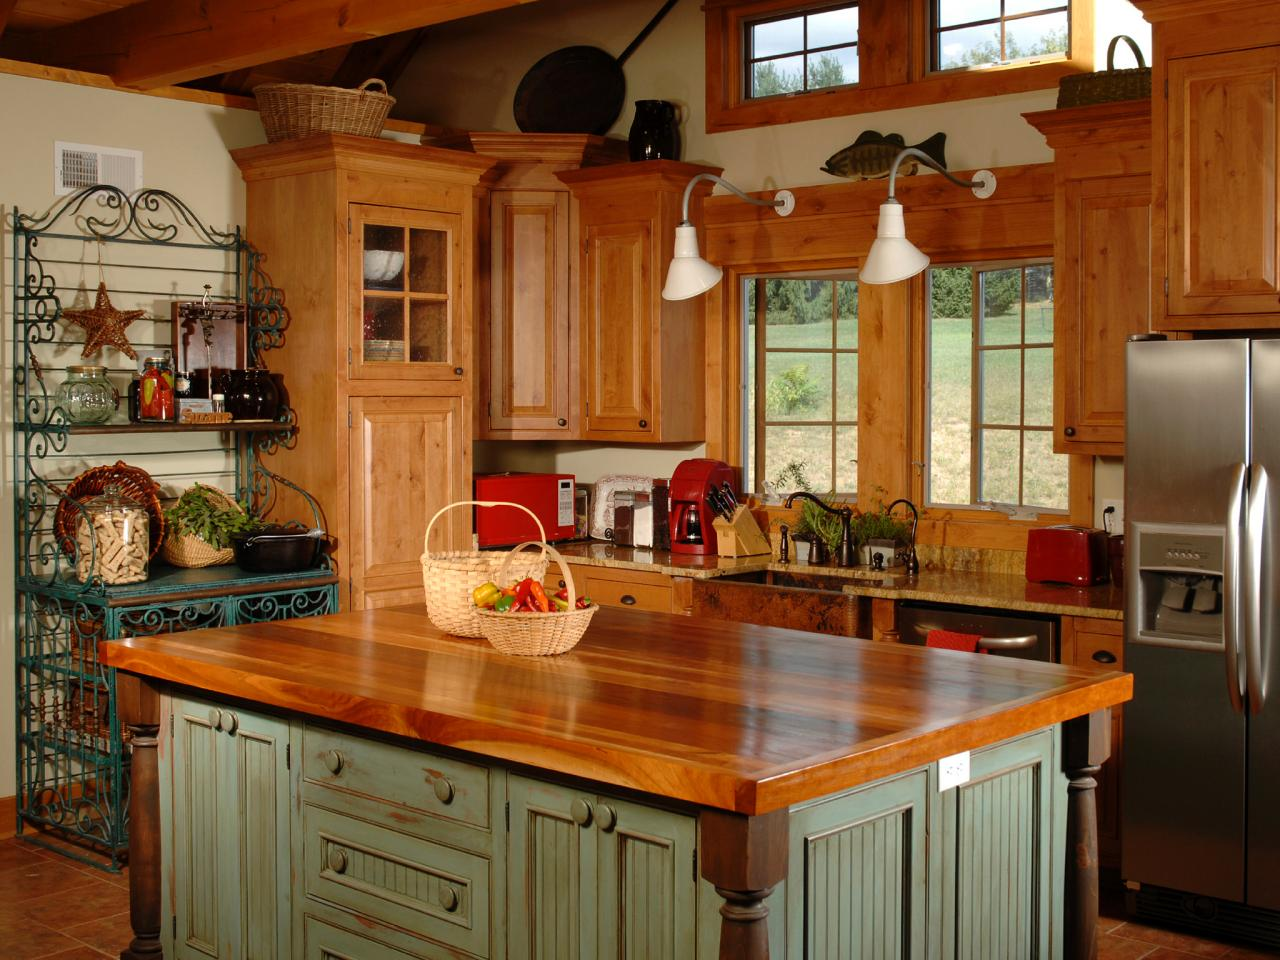 Country Kitchen Images Country Kitchen Islands  Hgtv